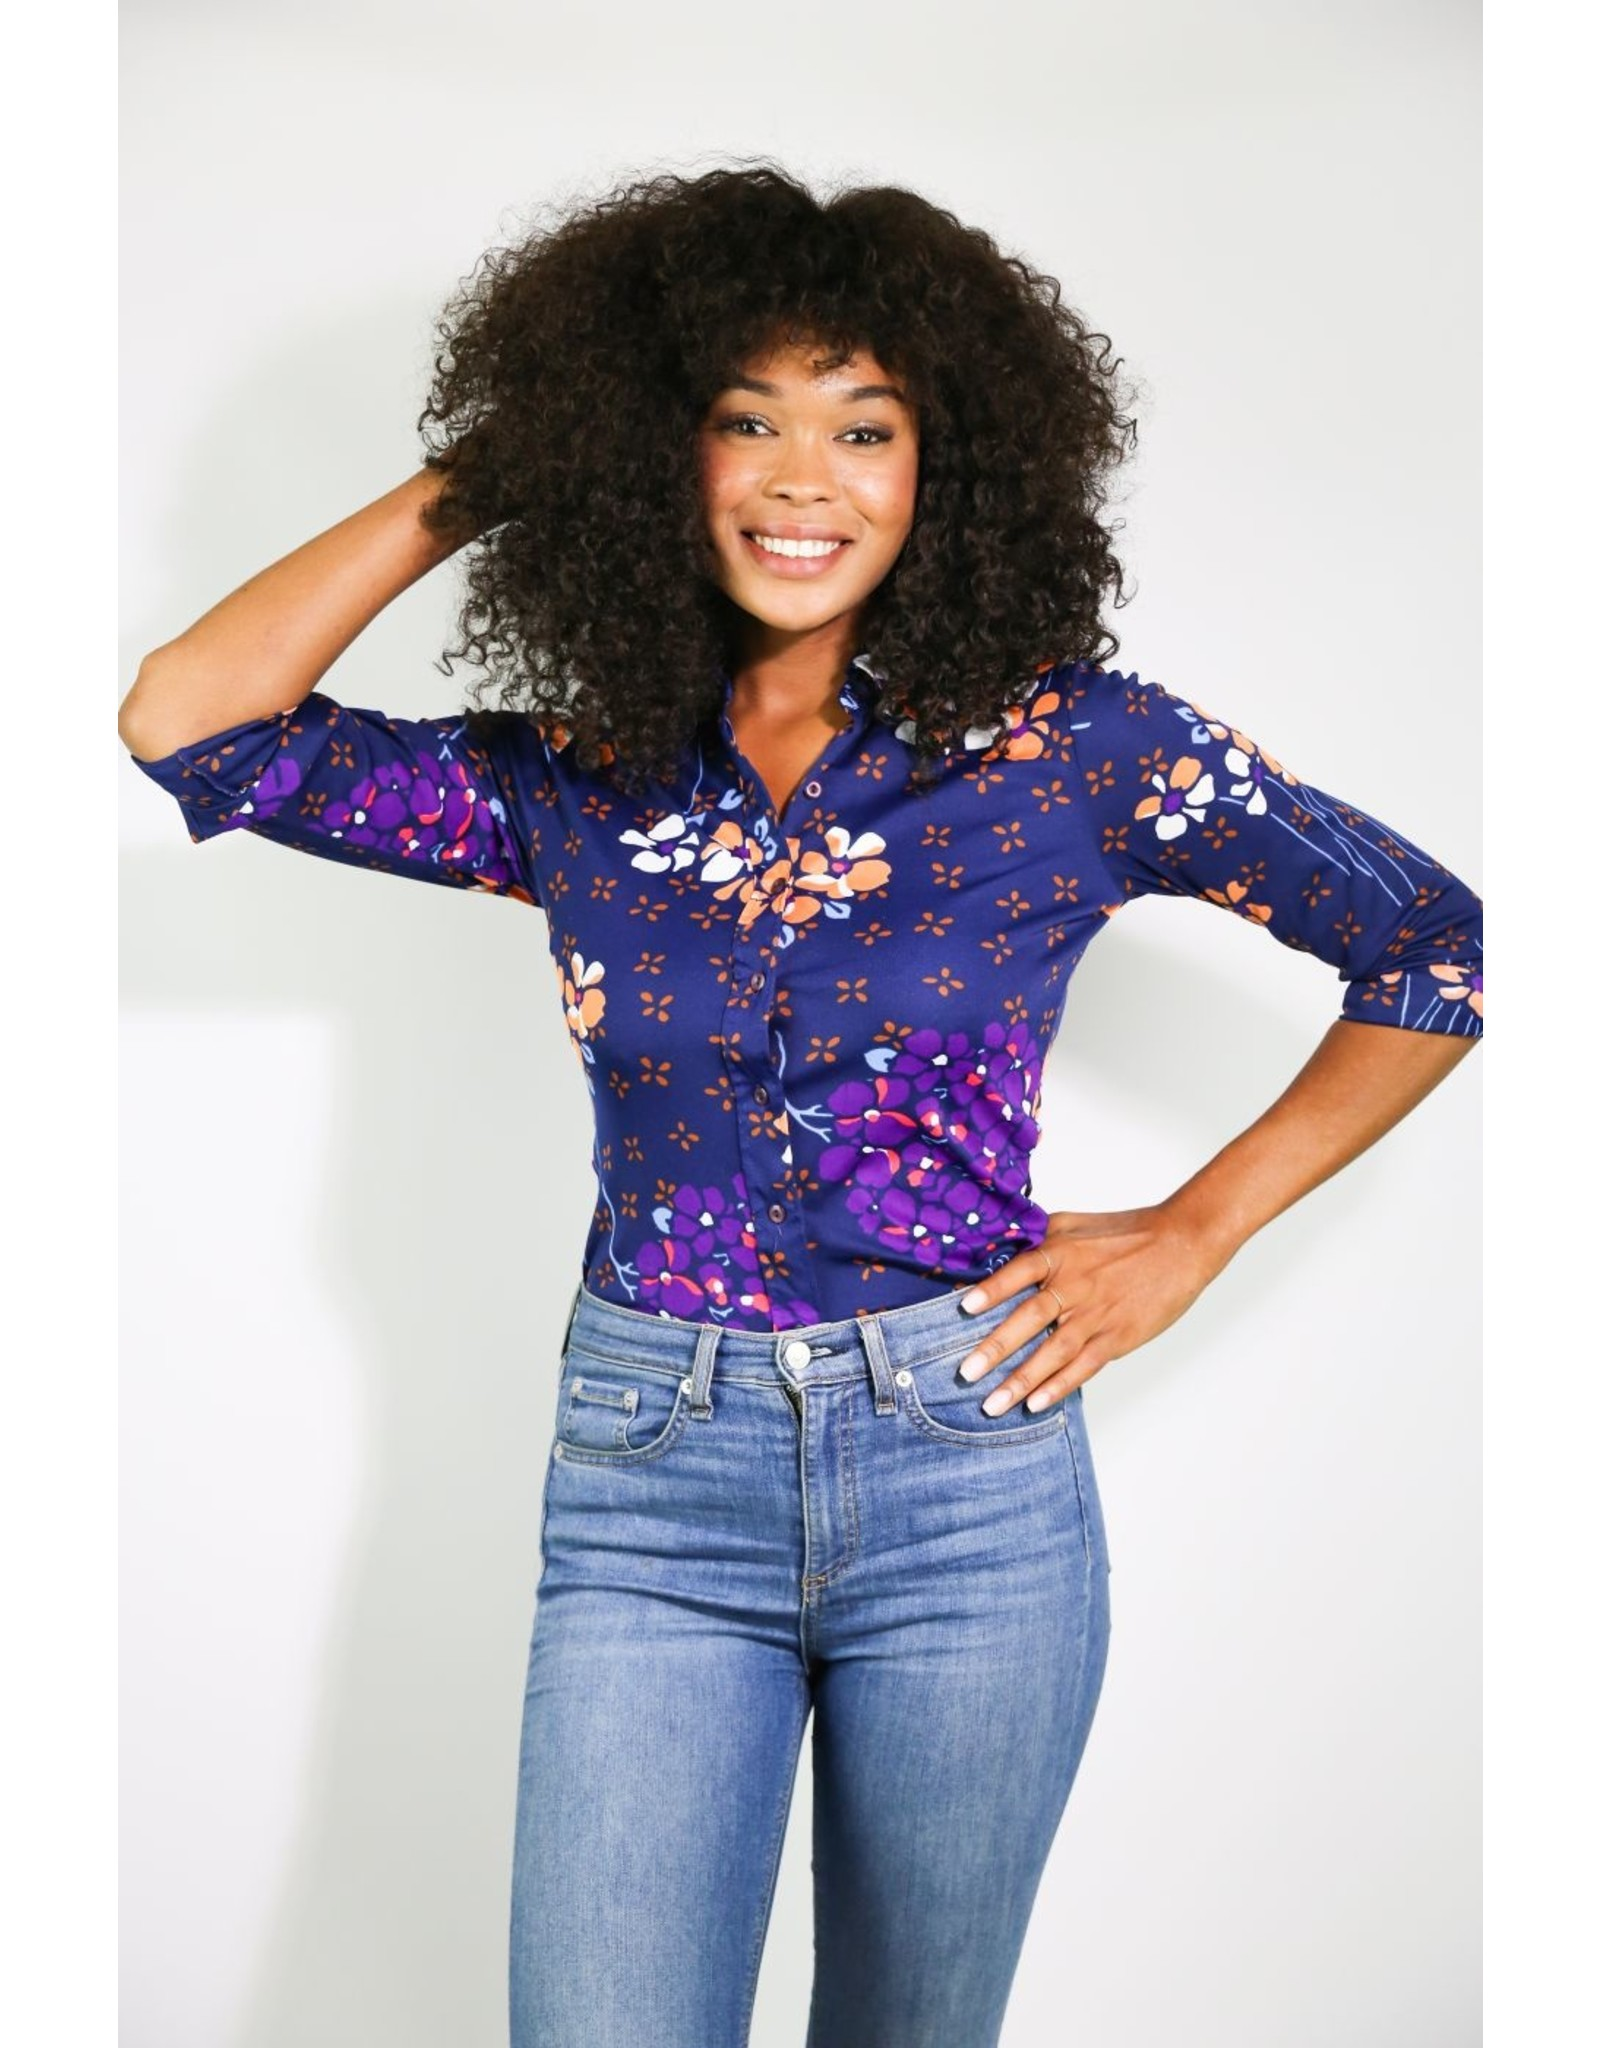 1970's Long Sleeved Navy Blue Top With Flowers